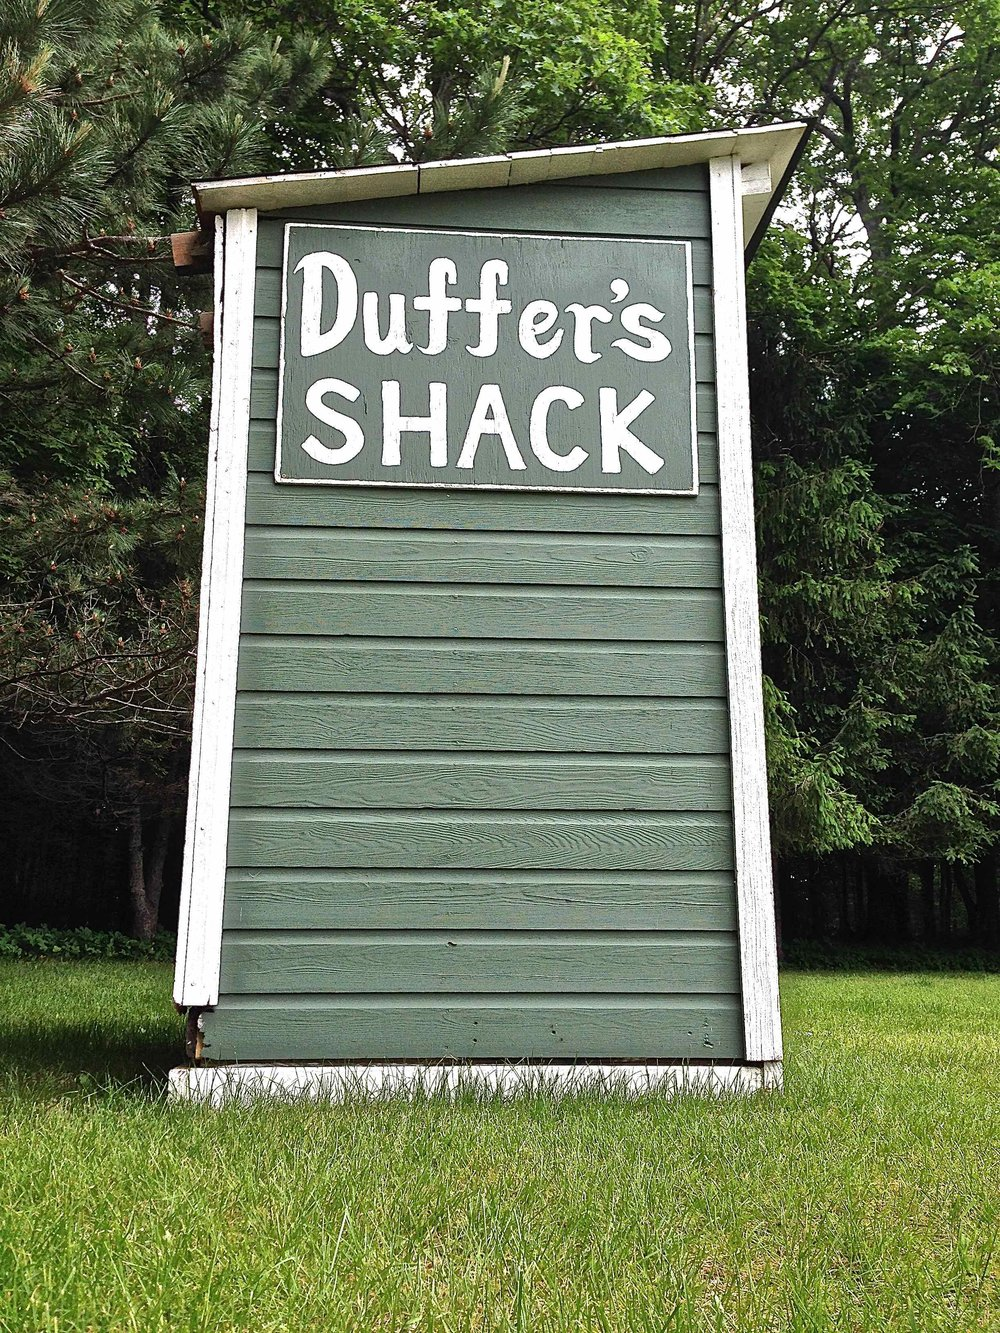 DufferShack.jpg